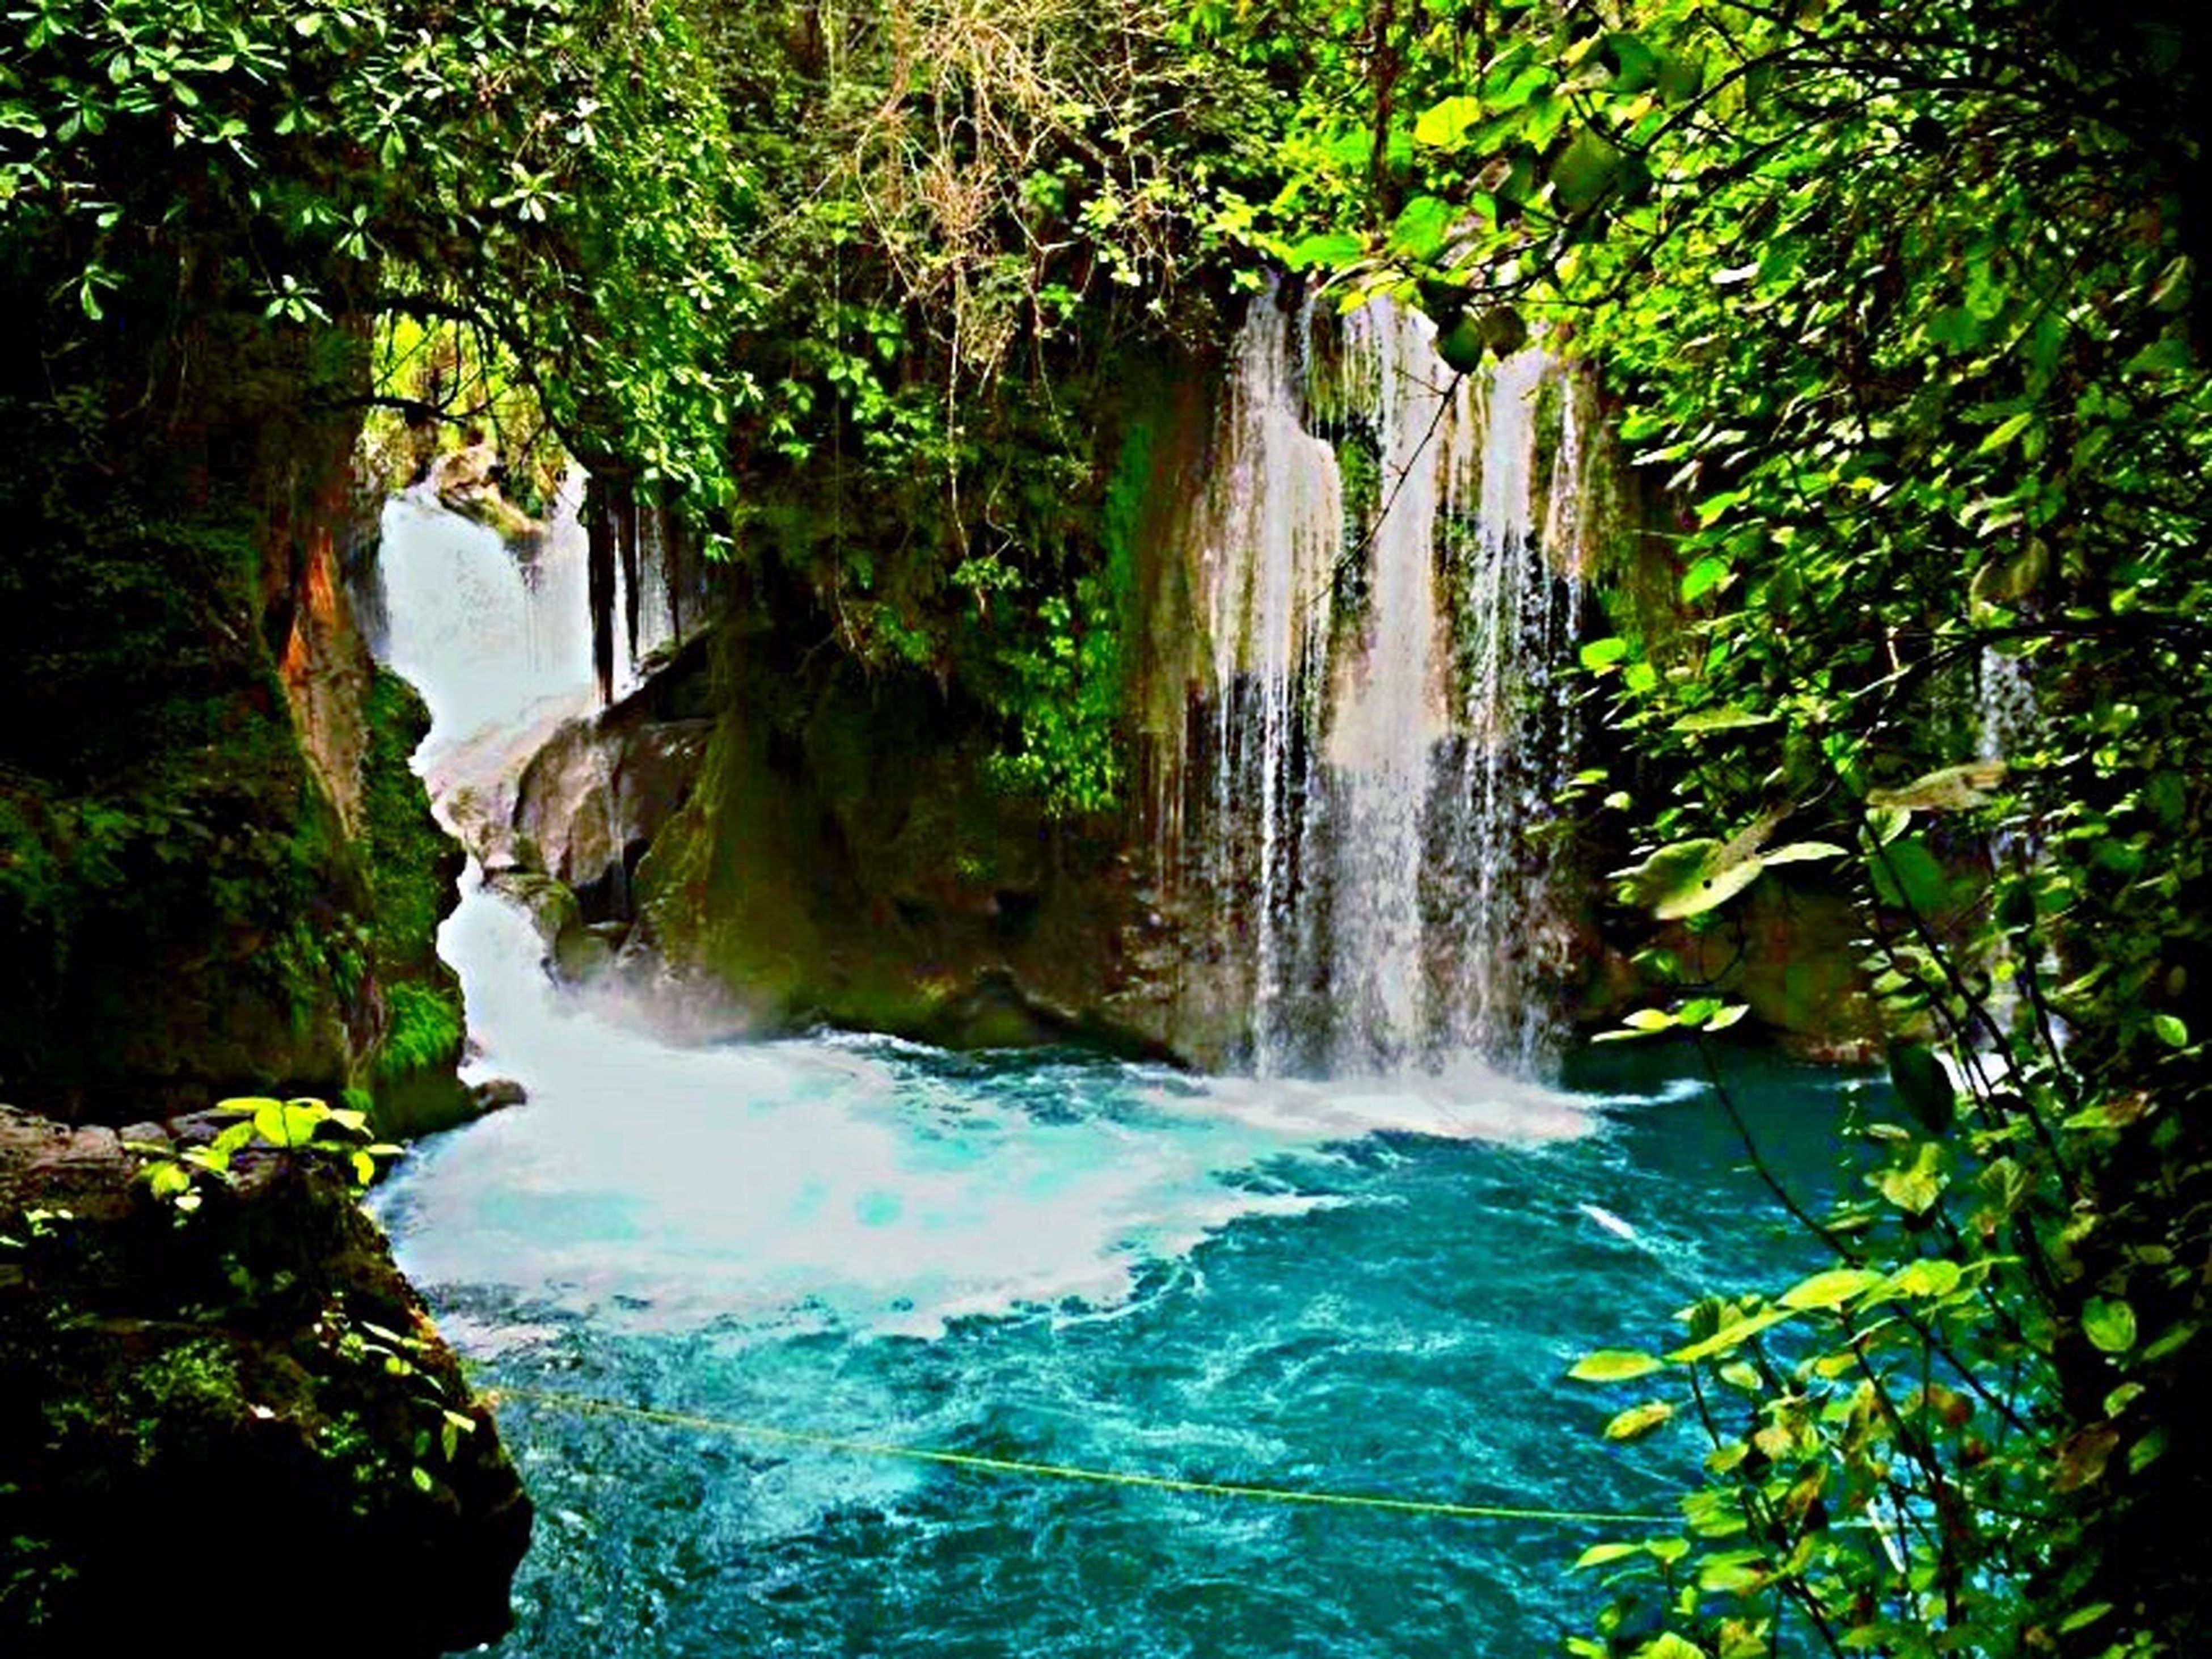 water, nature, waterfall, scenics, refraction, landscape, tree, rock - object, beauty in nature, travel destinations, forest, outdoors, no people, vacations, day